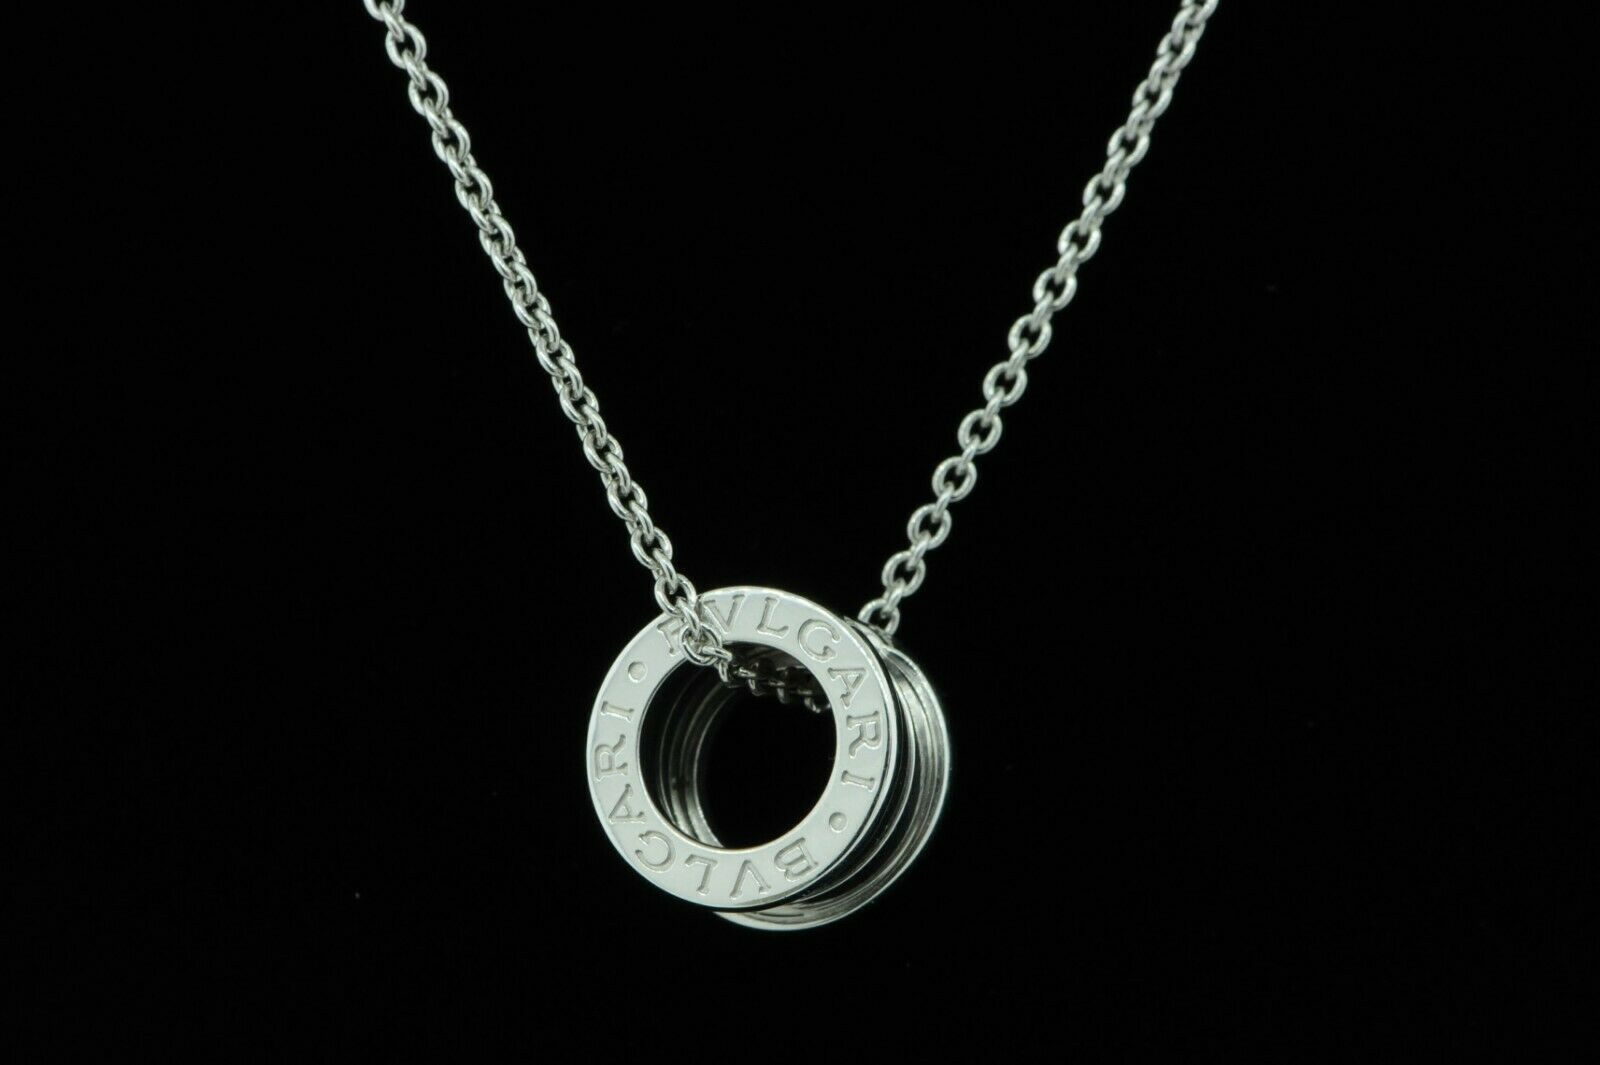 BVLGARI 18K White Gold B.ZERO1 Necklace (Retail $3000)